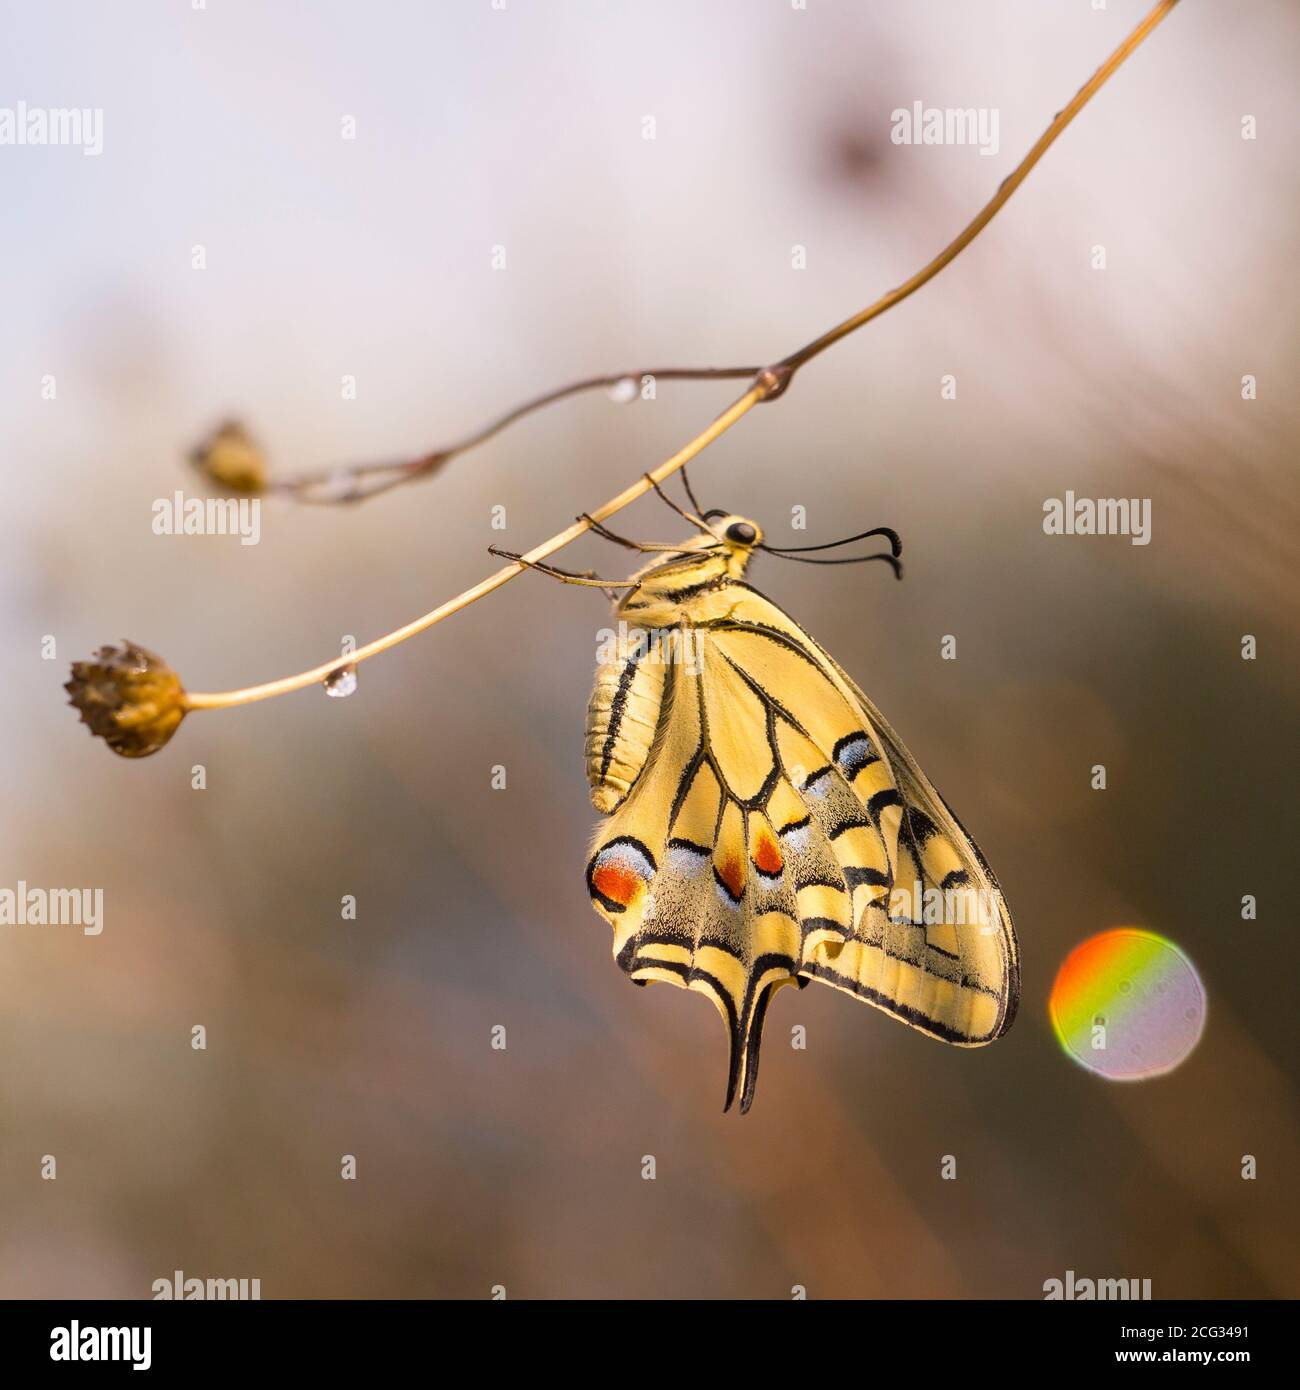 Old World Swallowtail (Papilio machaon) AKA Common yellow swallowtail Butterfly on a flower. This species, is native to Europe and Asia. Photographed Stock Photo